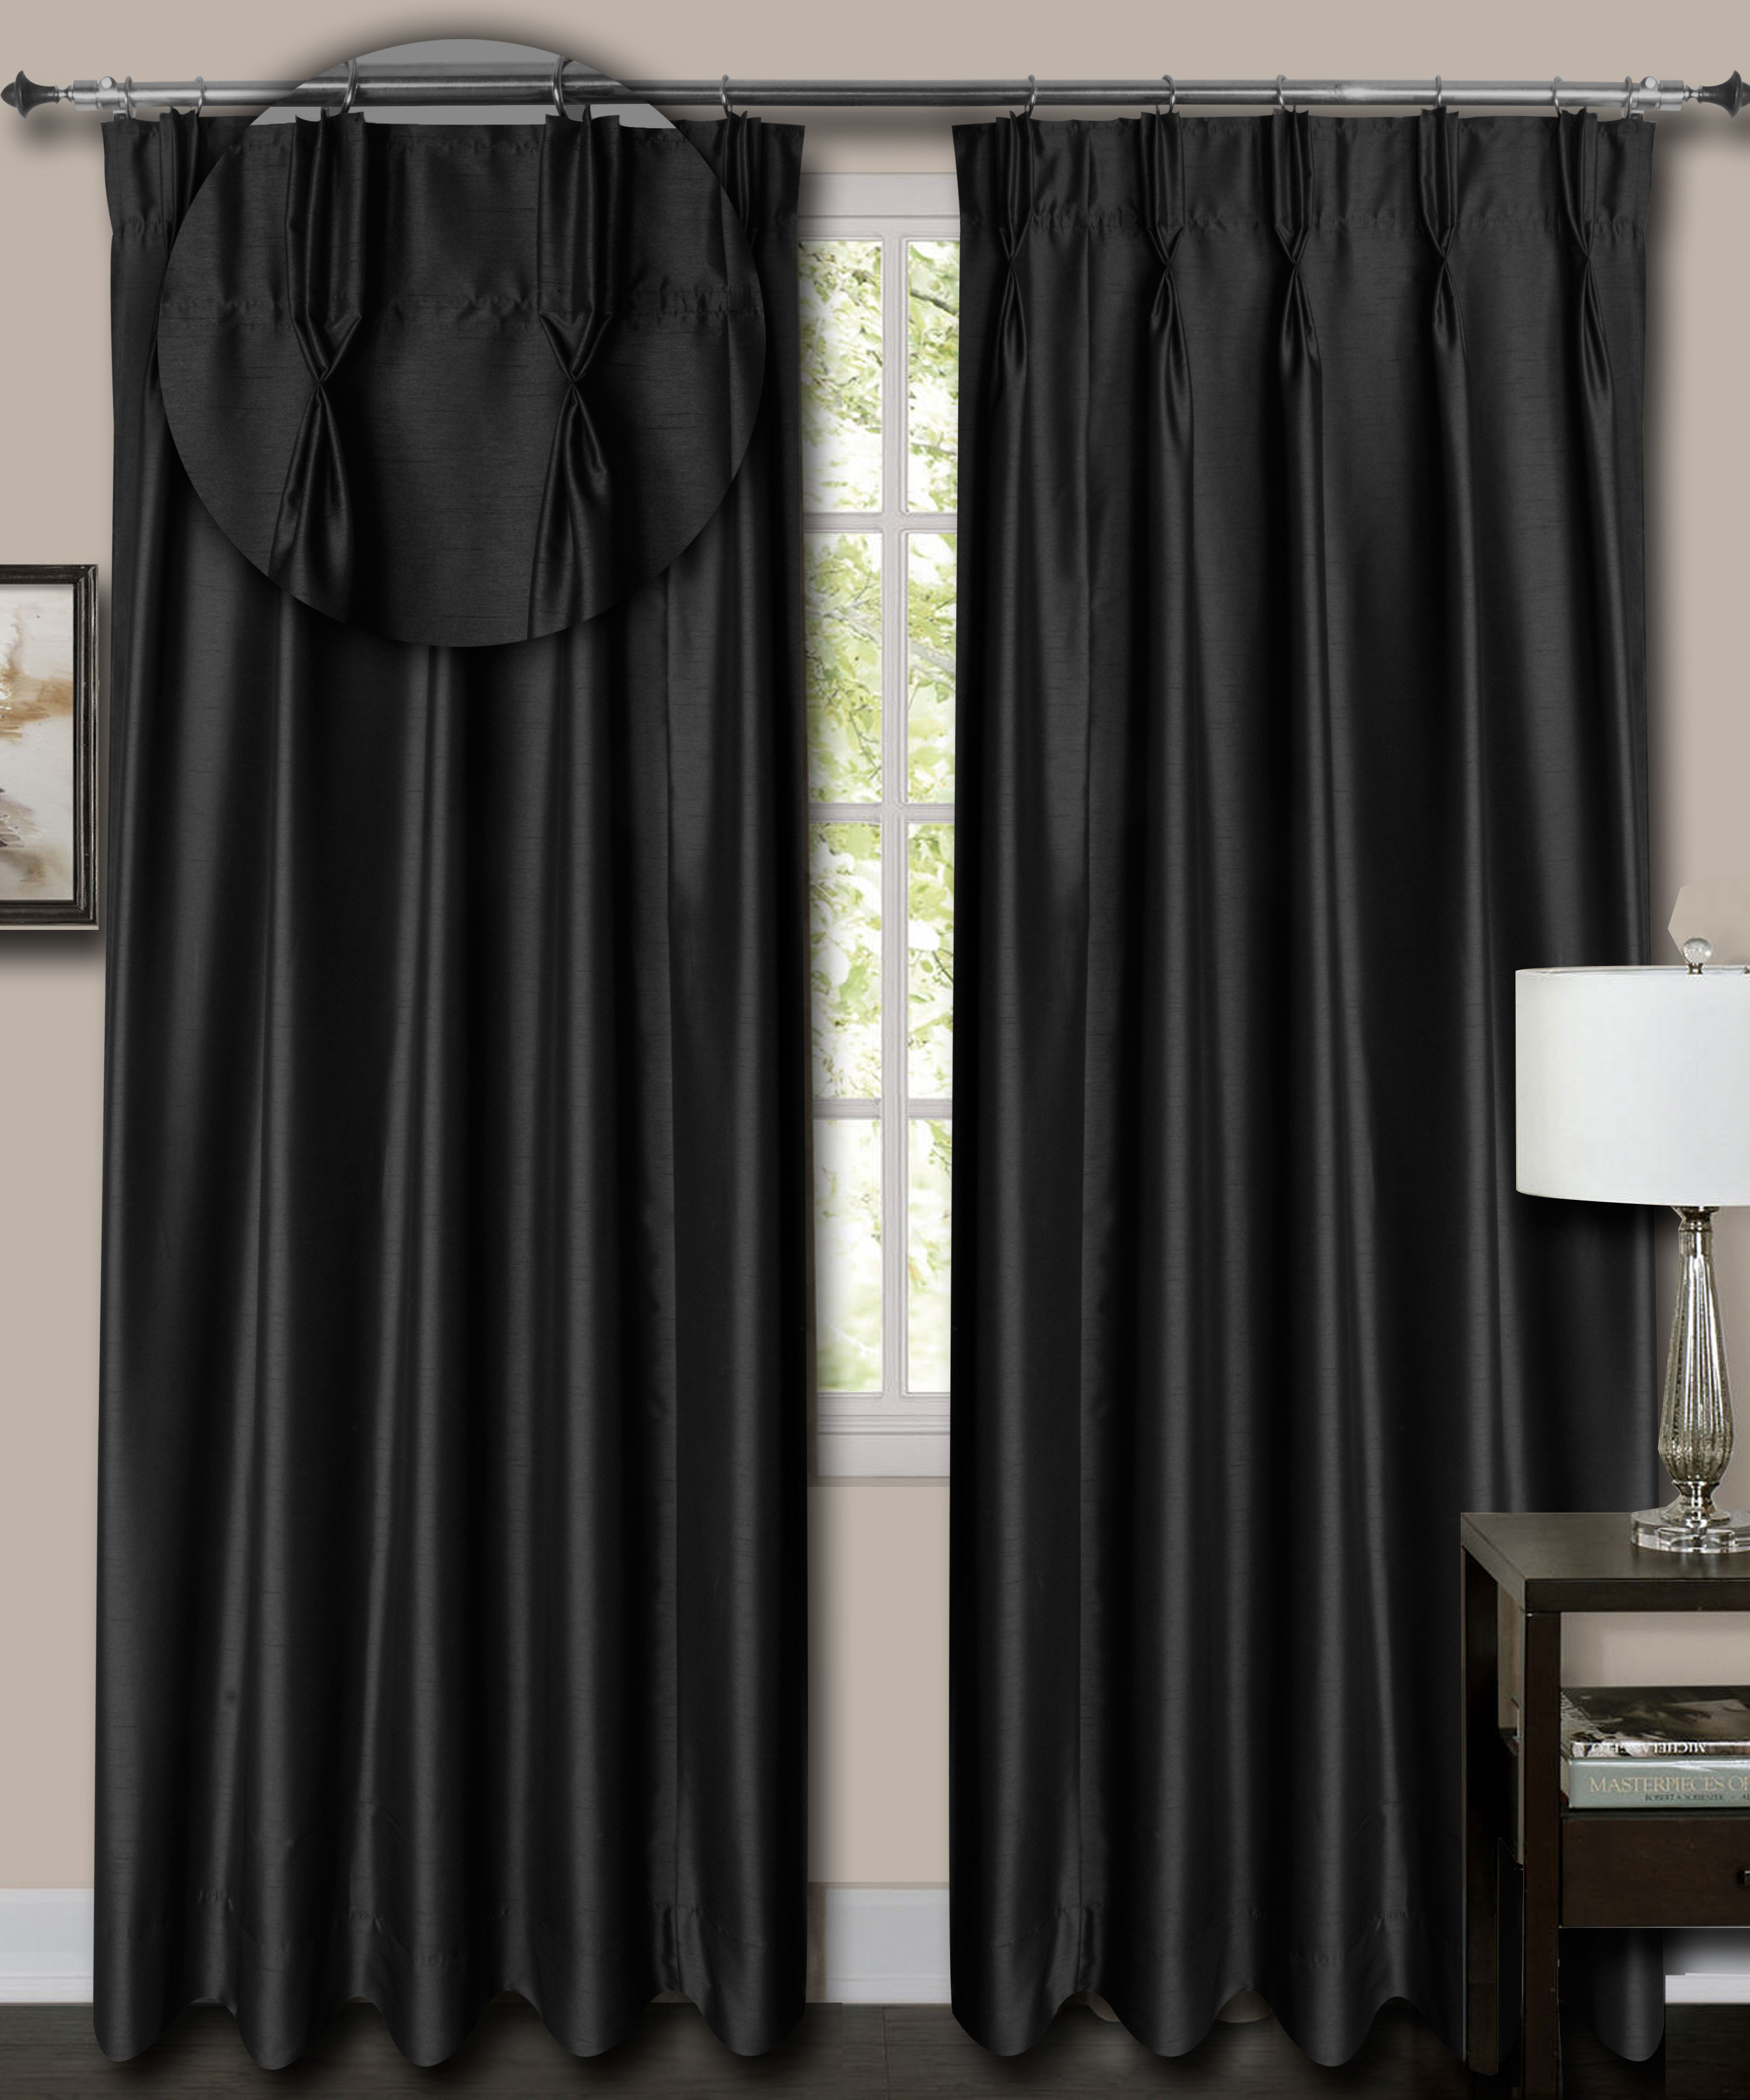 "French Pleat Top Black Faux Silk Dupioni Curtains. (65"" Wide, 7 Feet Long, Thick Lining)"